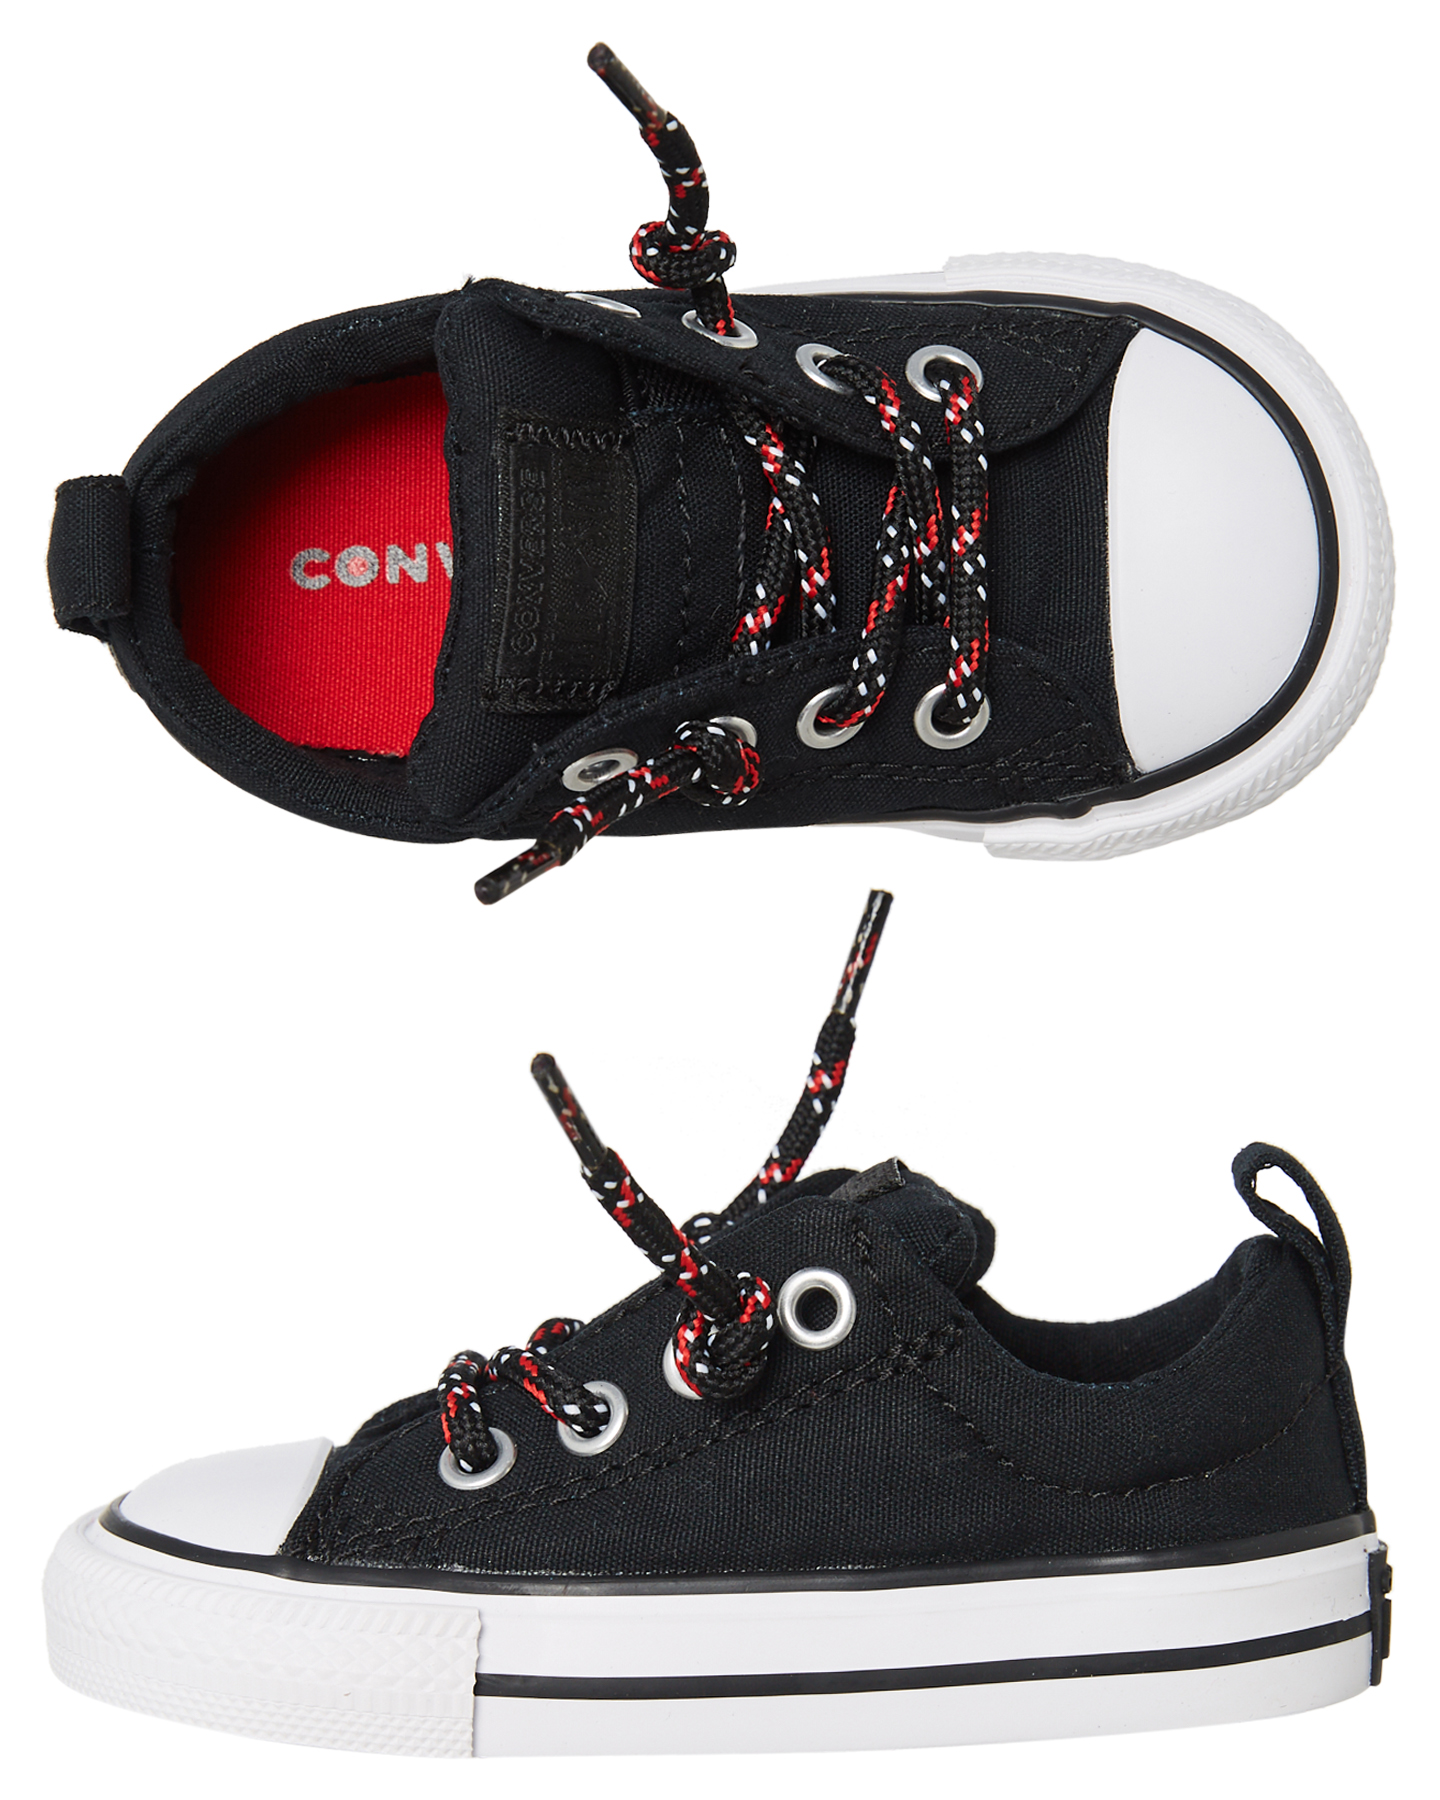 fadb3a1002b6 Converse Chuck Taylor All Star Street Slip Shoe - Kids - Black ...